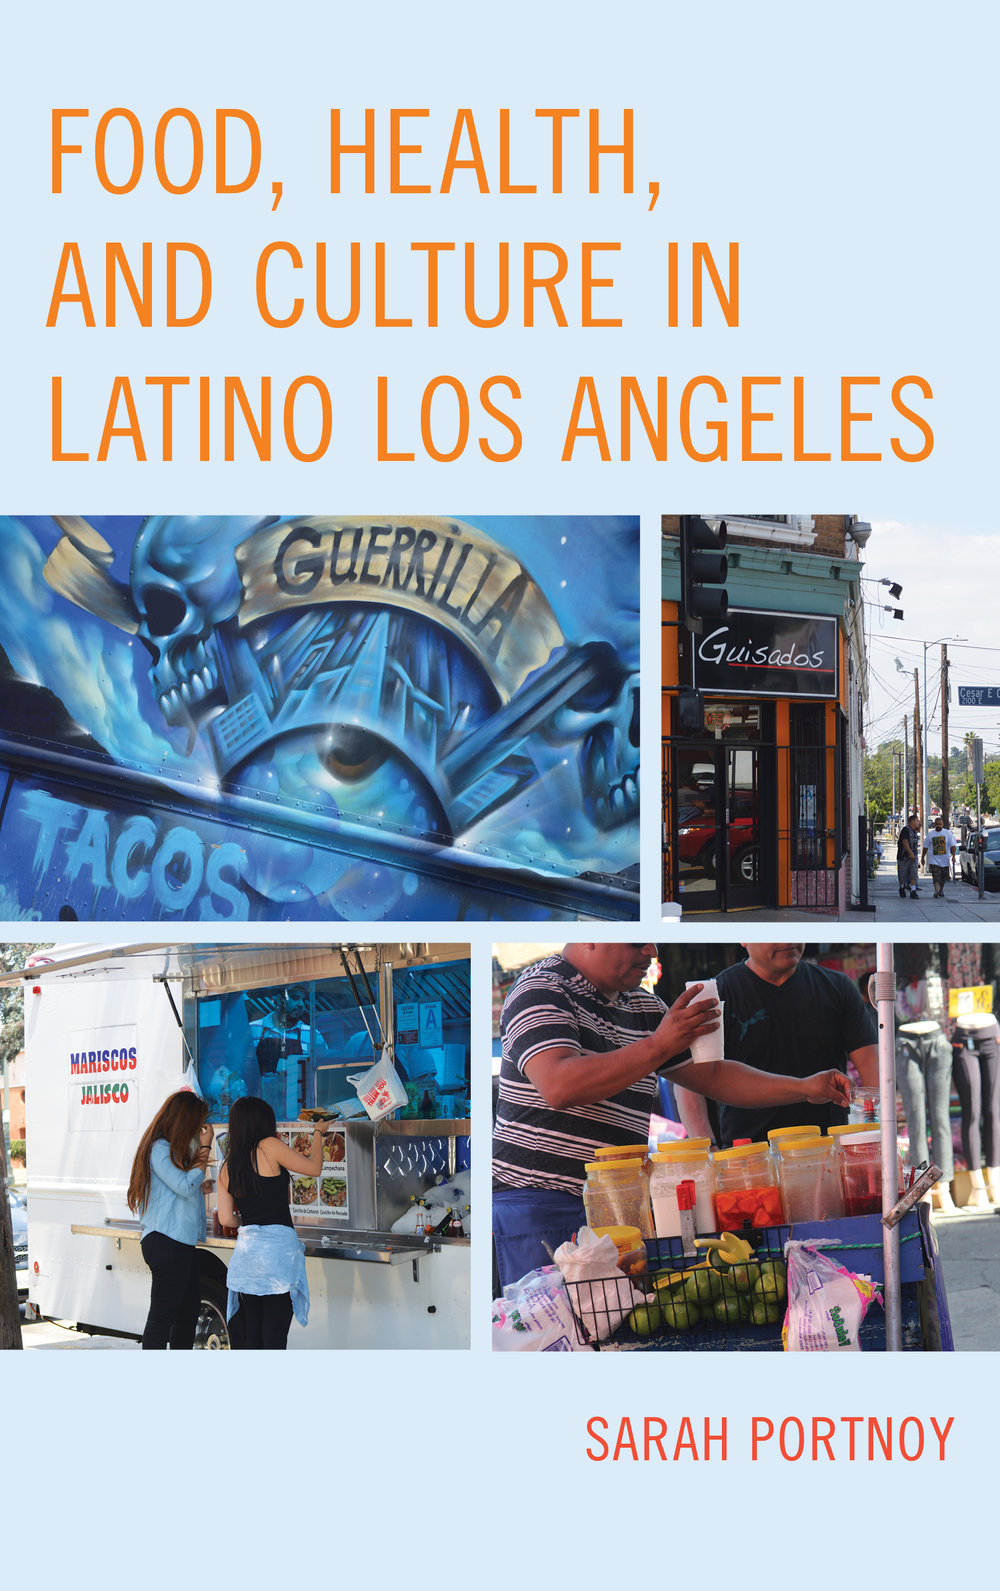 Food, Health, and Culture in Latino Los Angeles.jpg